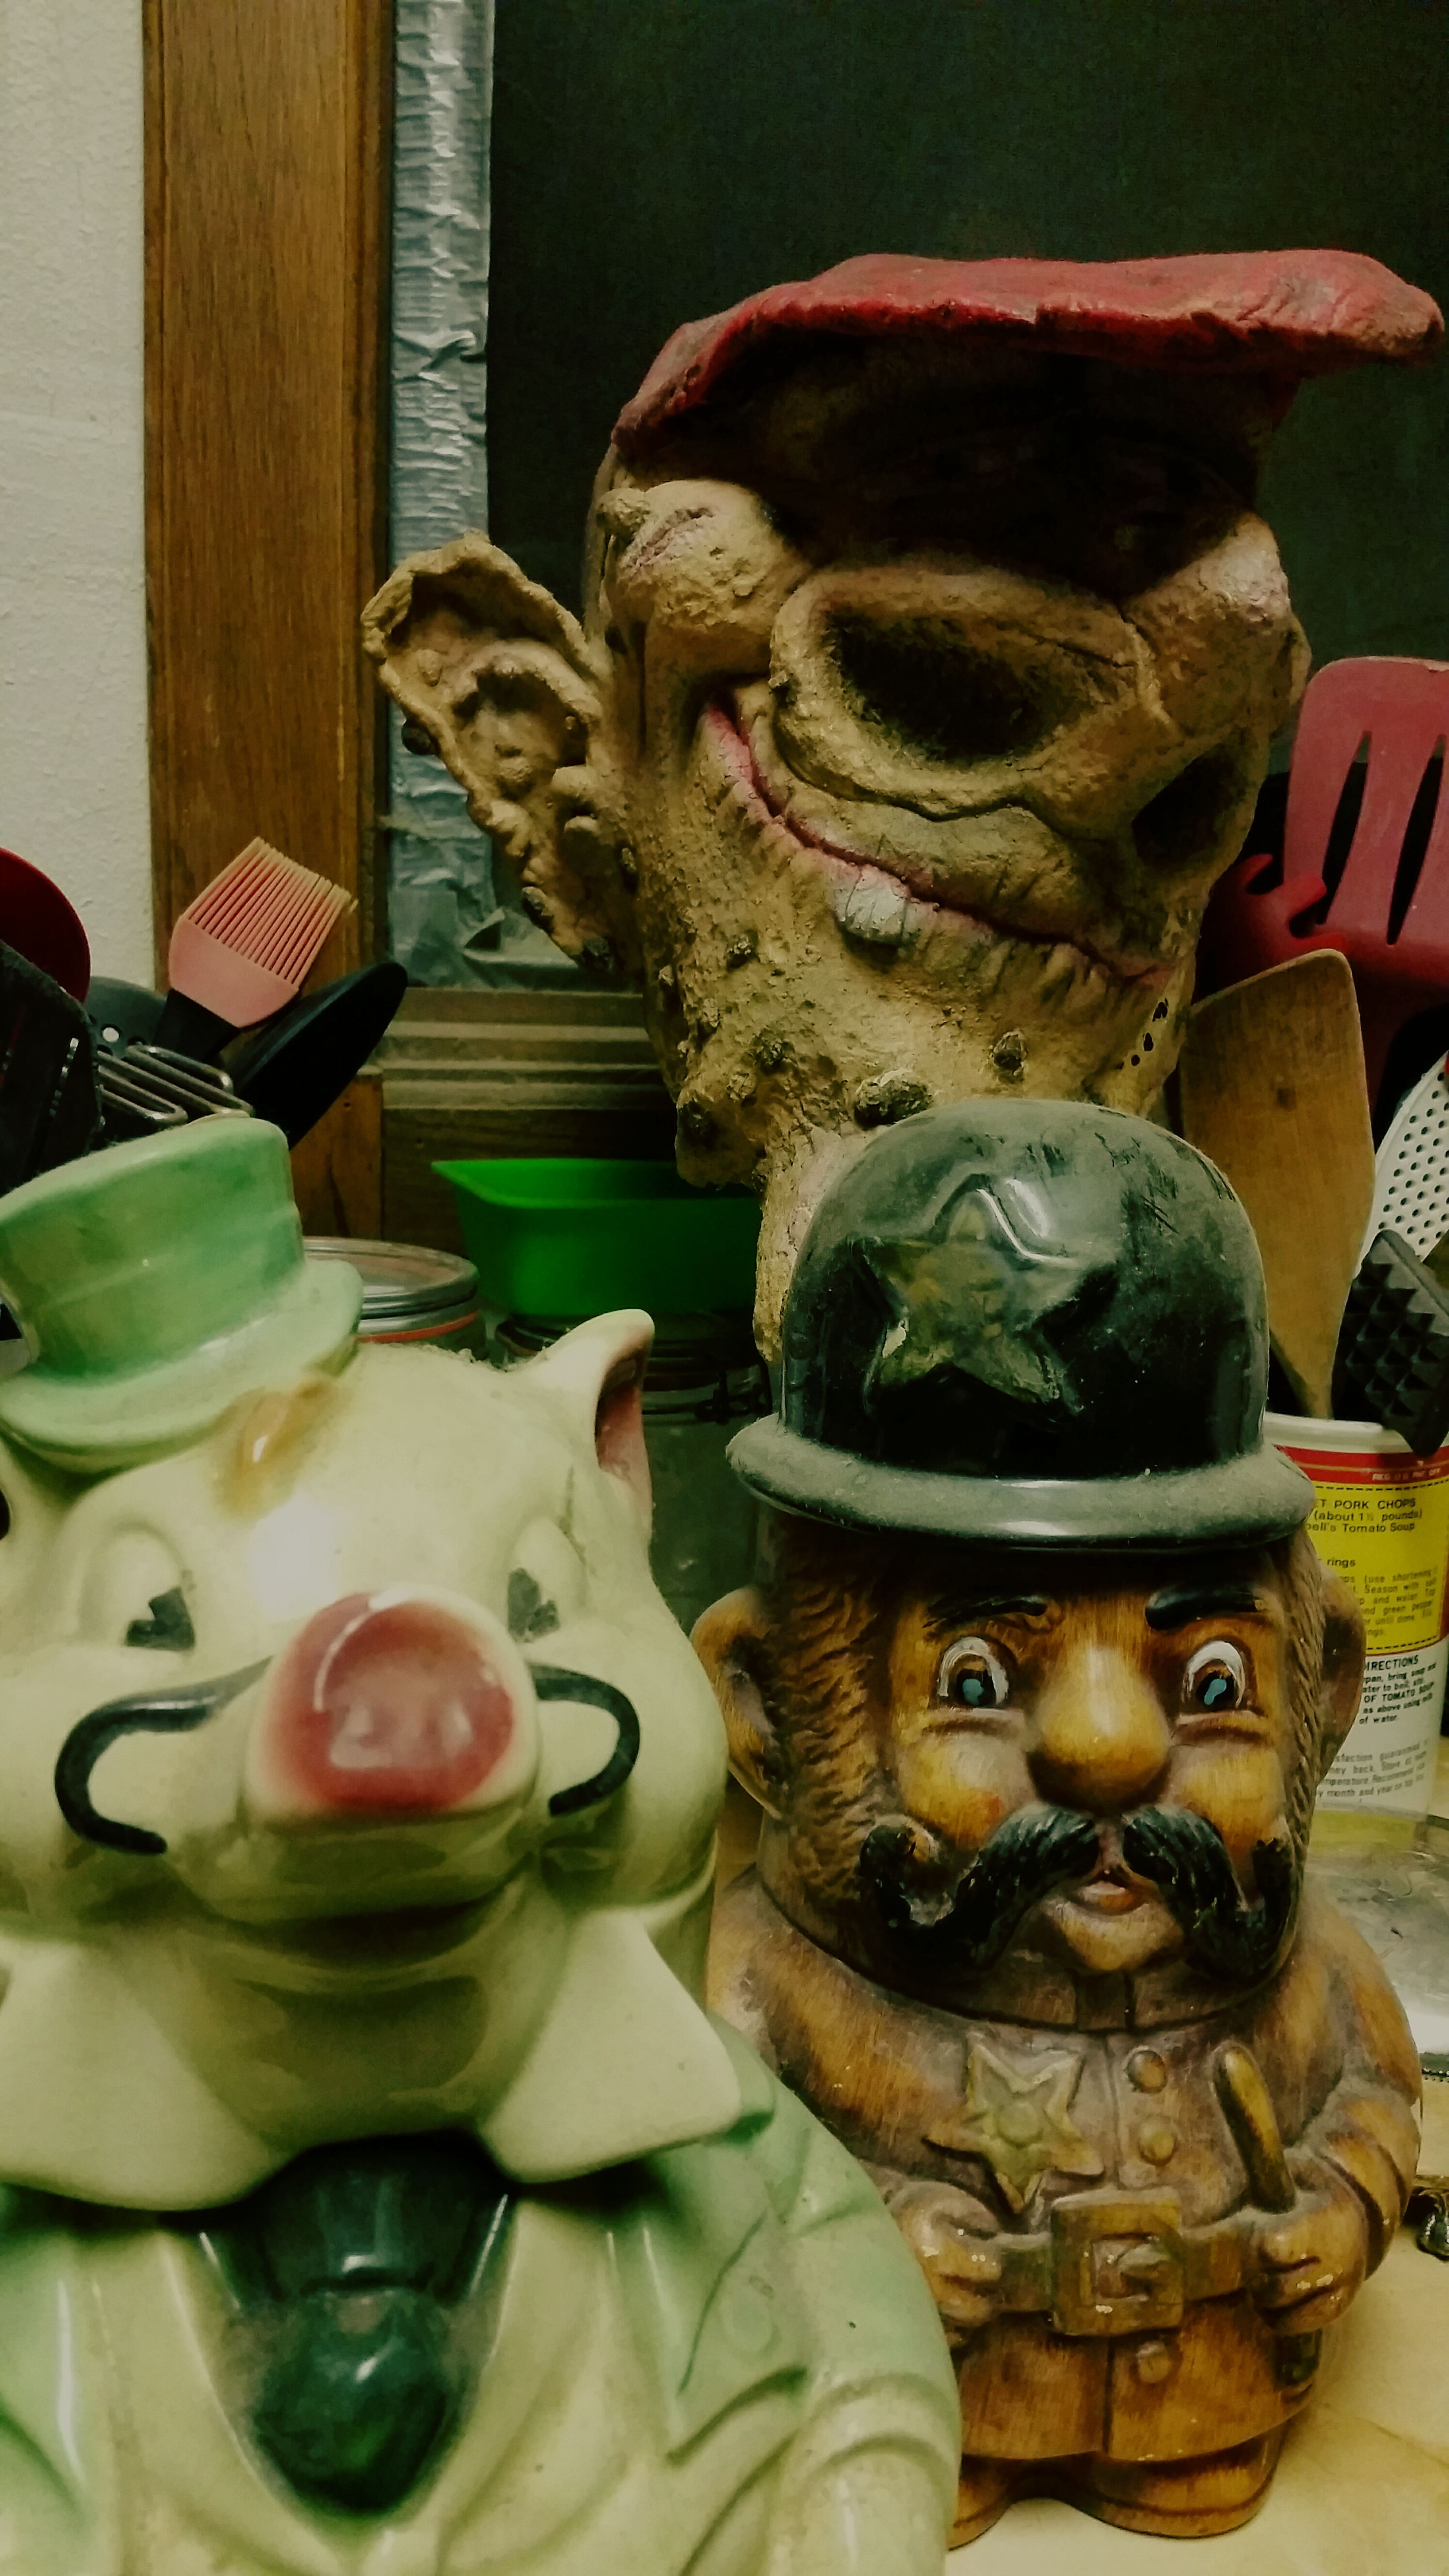 Eyeem Photography Taking Photos In The Kitchen The Cookie Jar Crew Variation Colorado Springs CO USA Sculpture Ceramic Lover